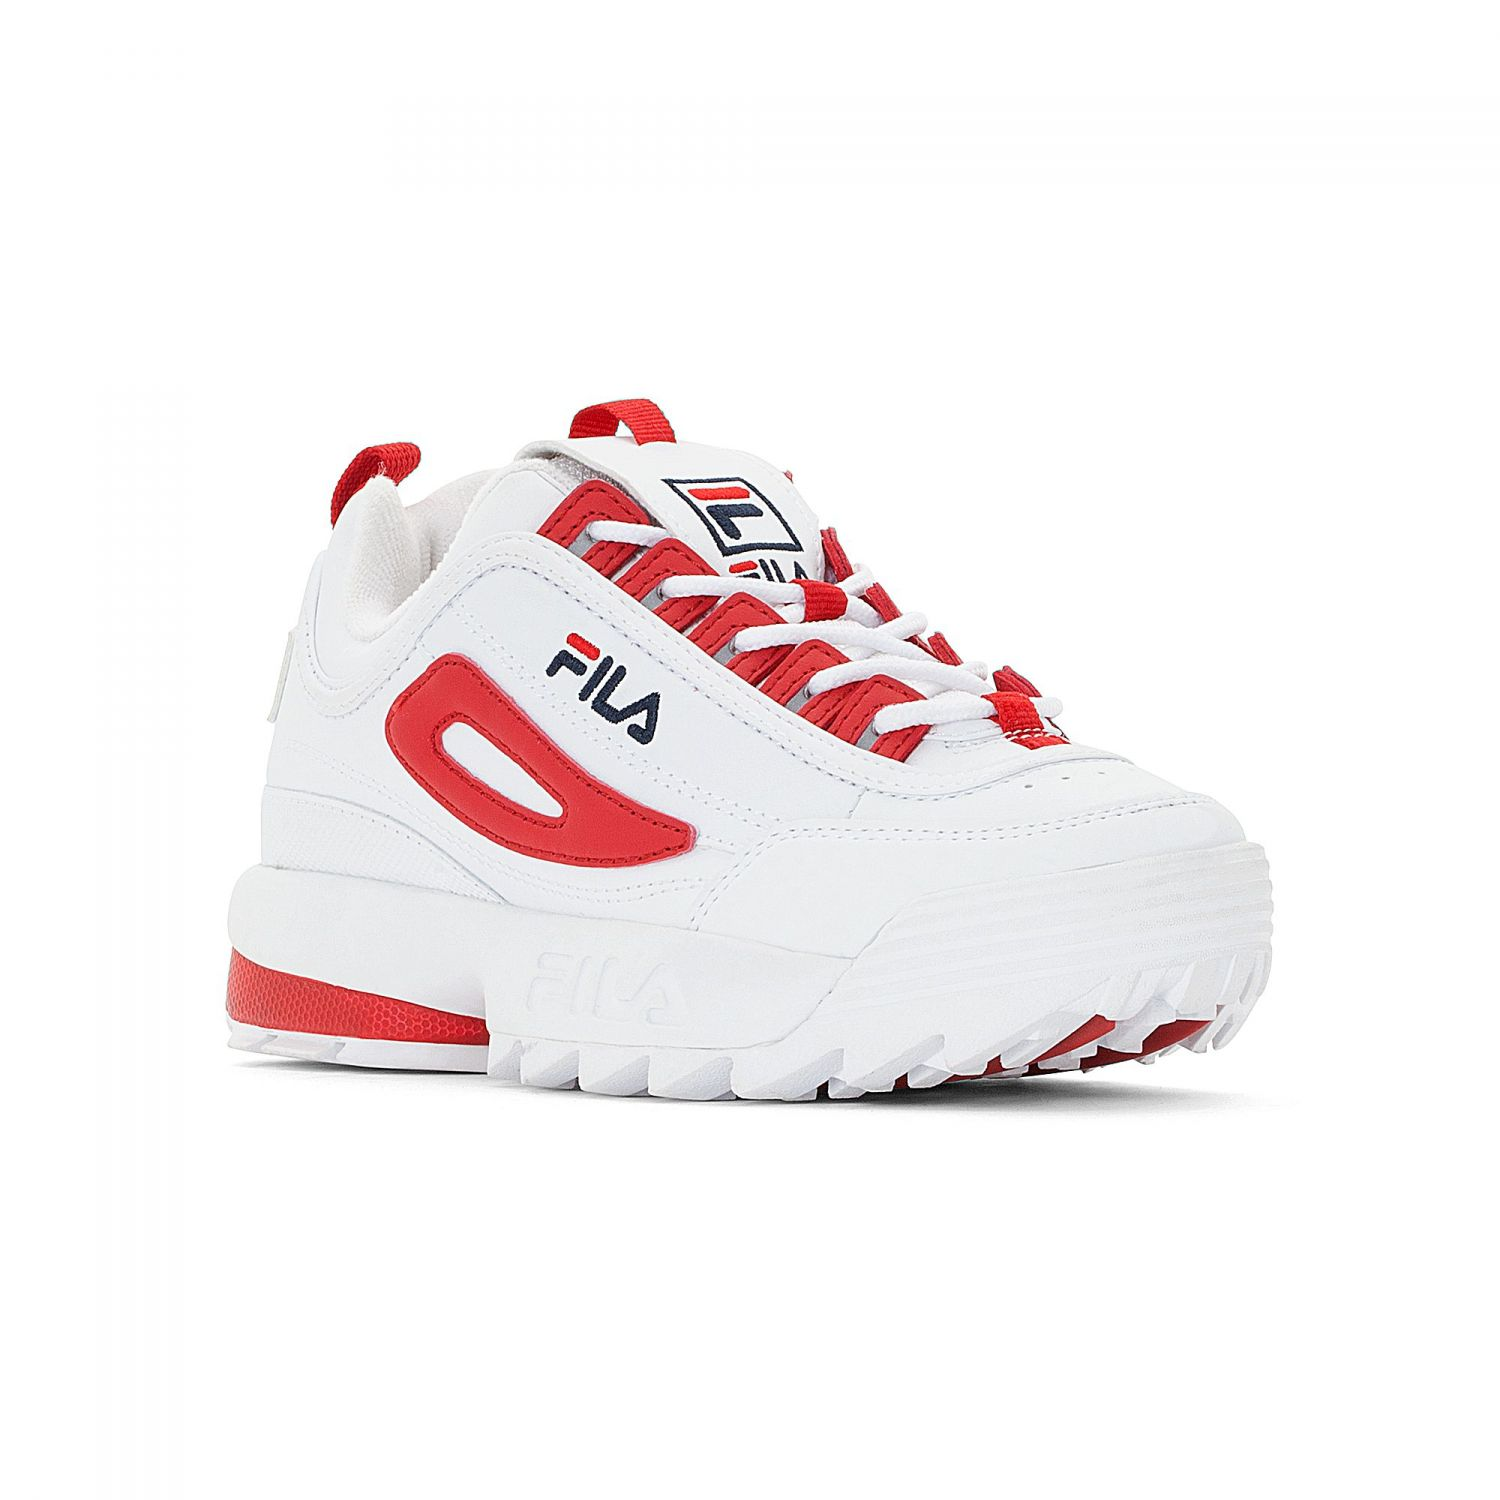 Low Cb Red White Disruptor Wmn y6gbfY7